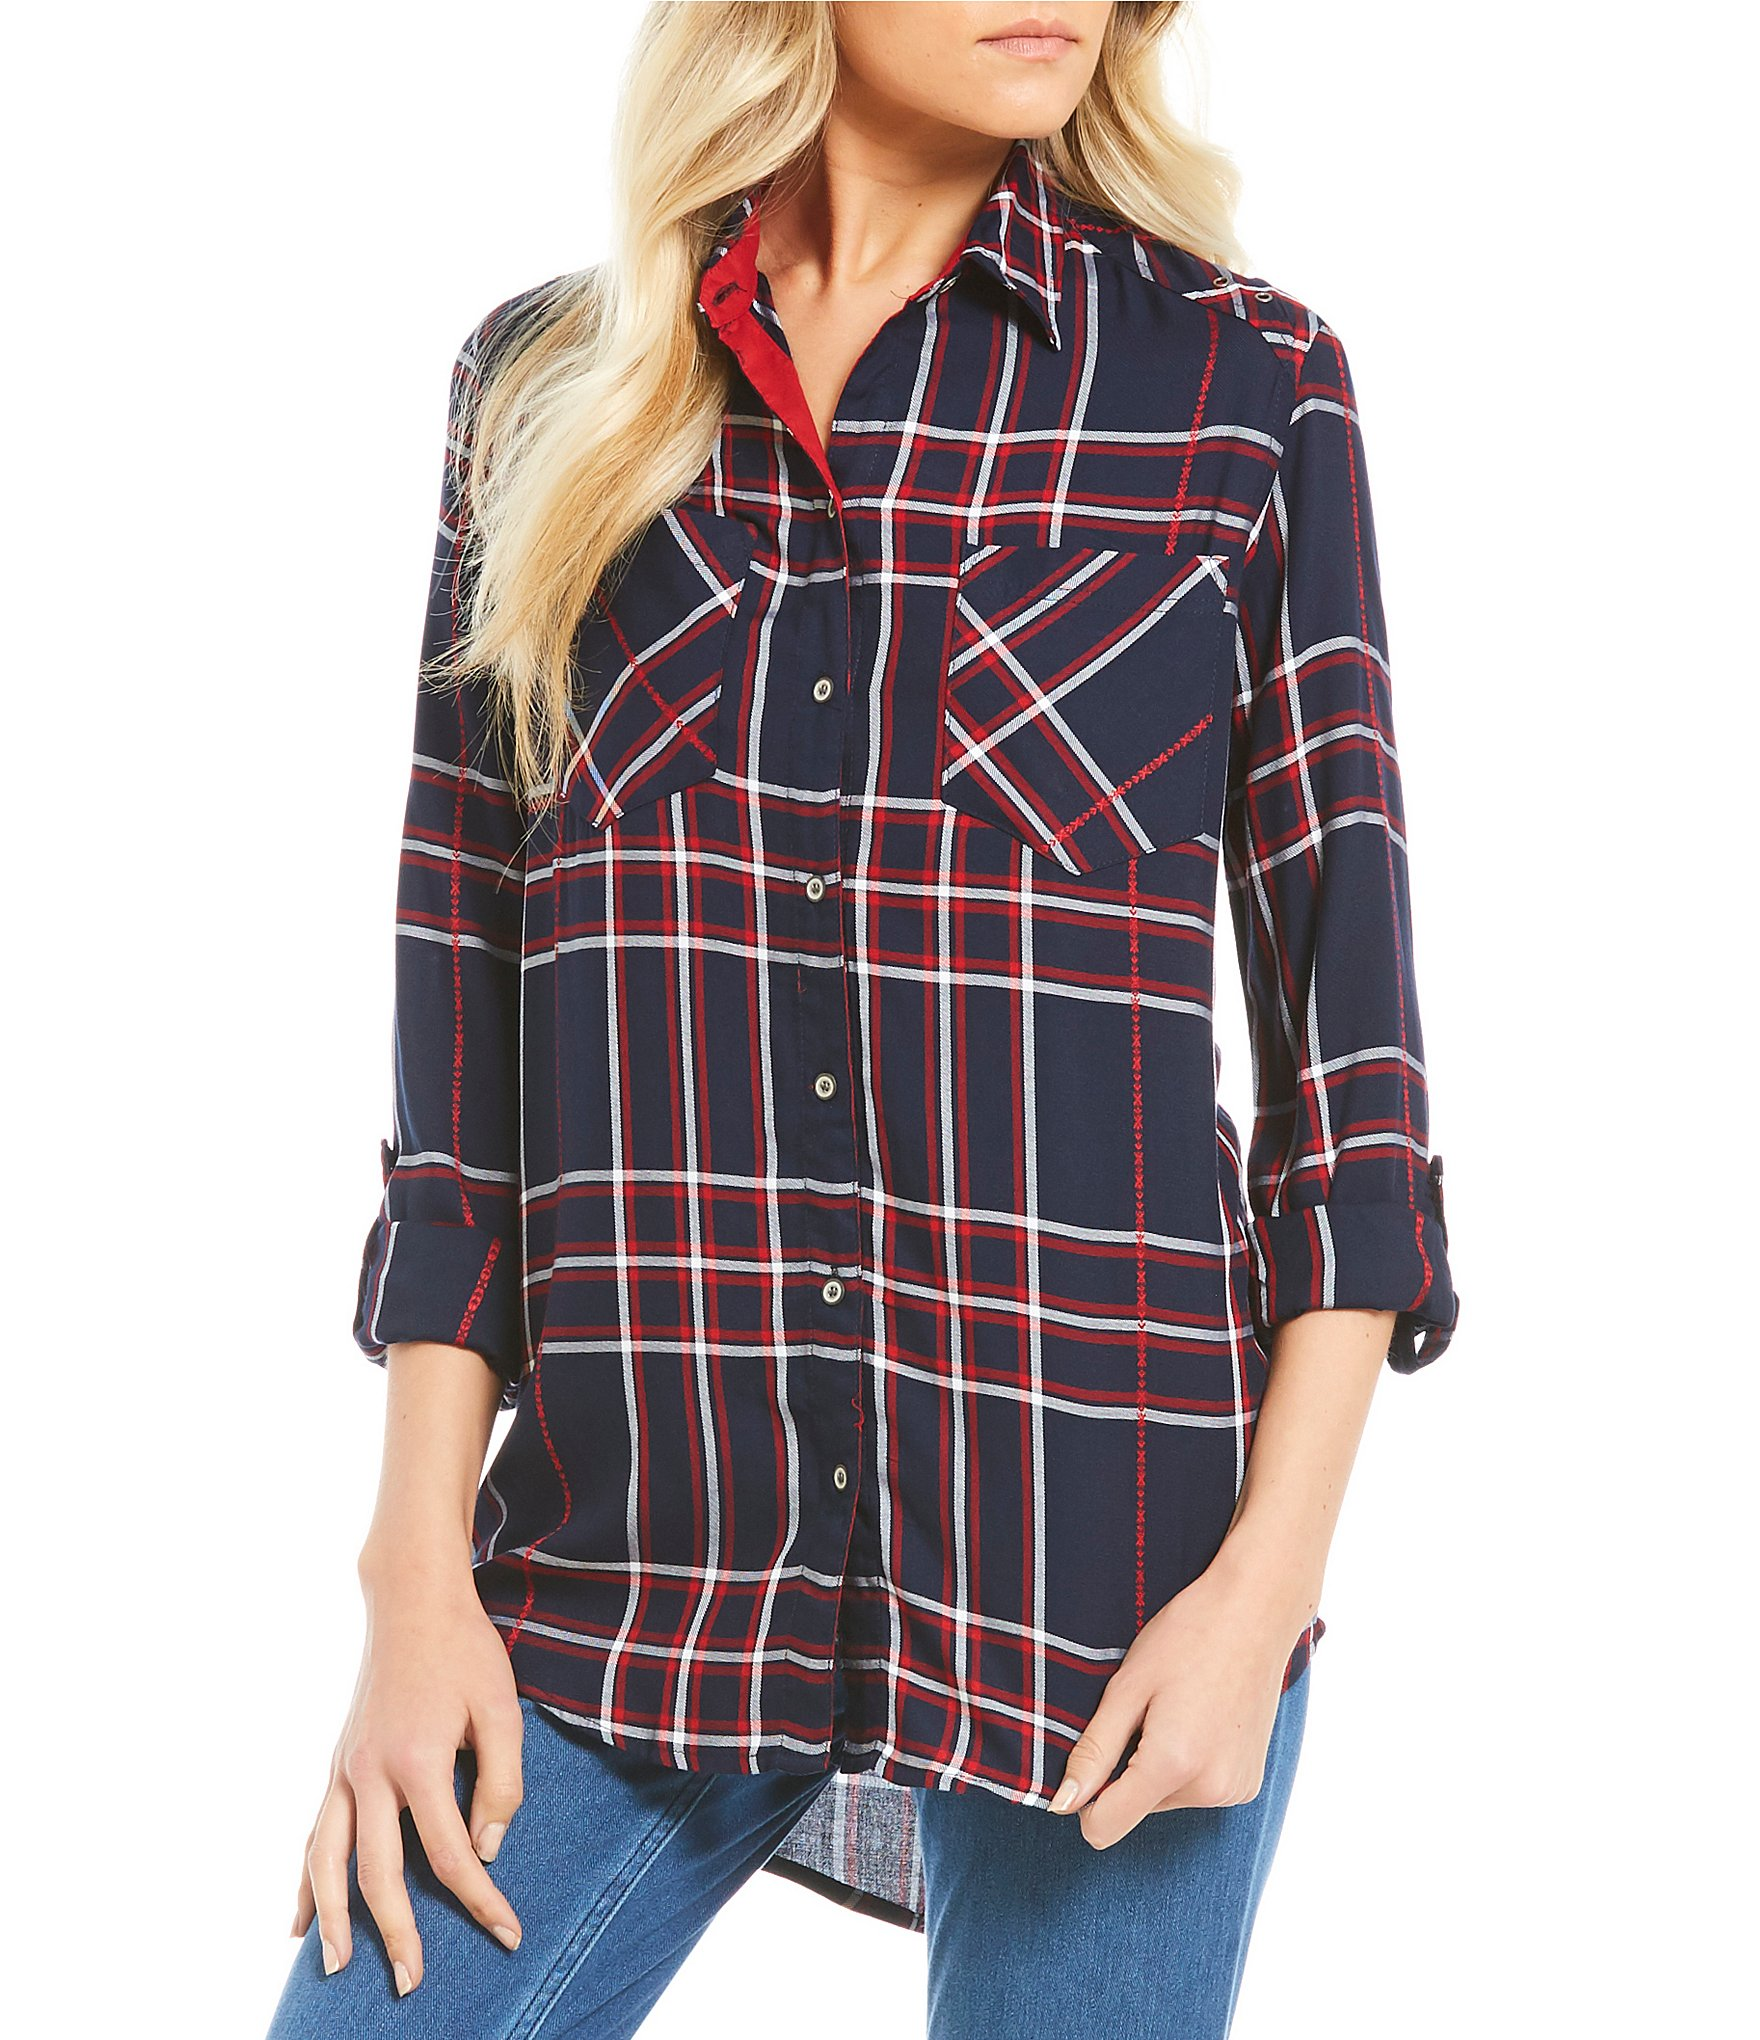 Westbound two pocket boyfriend shirt dillards for Red white and blue plaid shirt